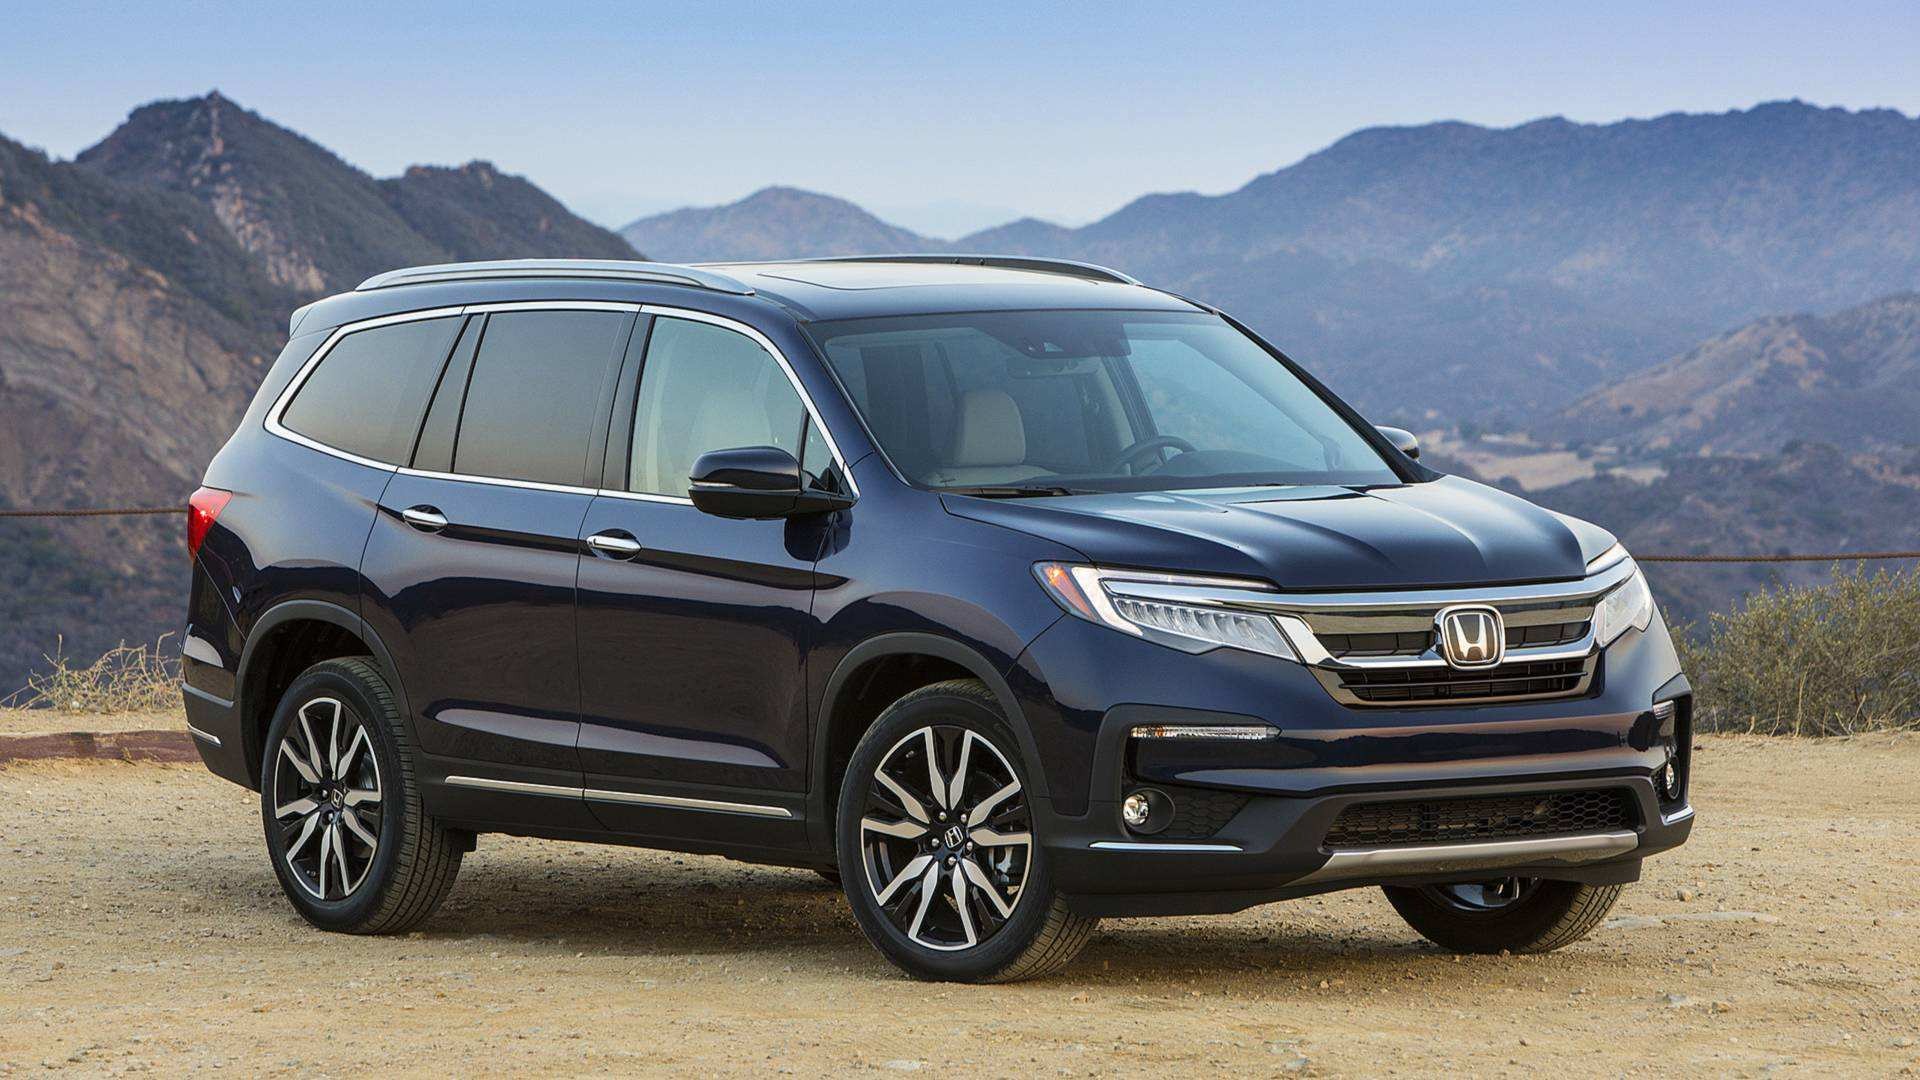 42 Gallery of 2019 Honda Pilot Review History for 2019 Honda Pilot Review